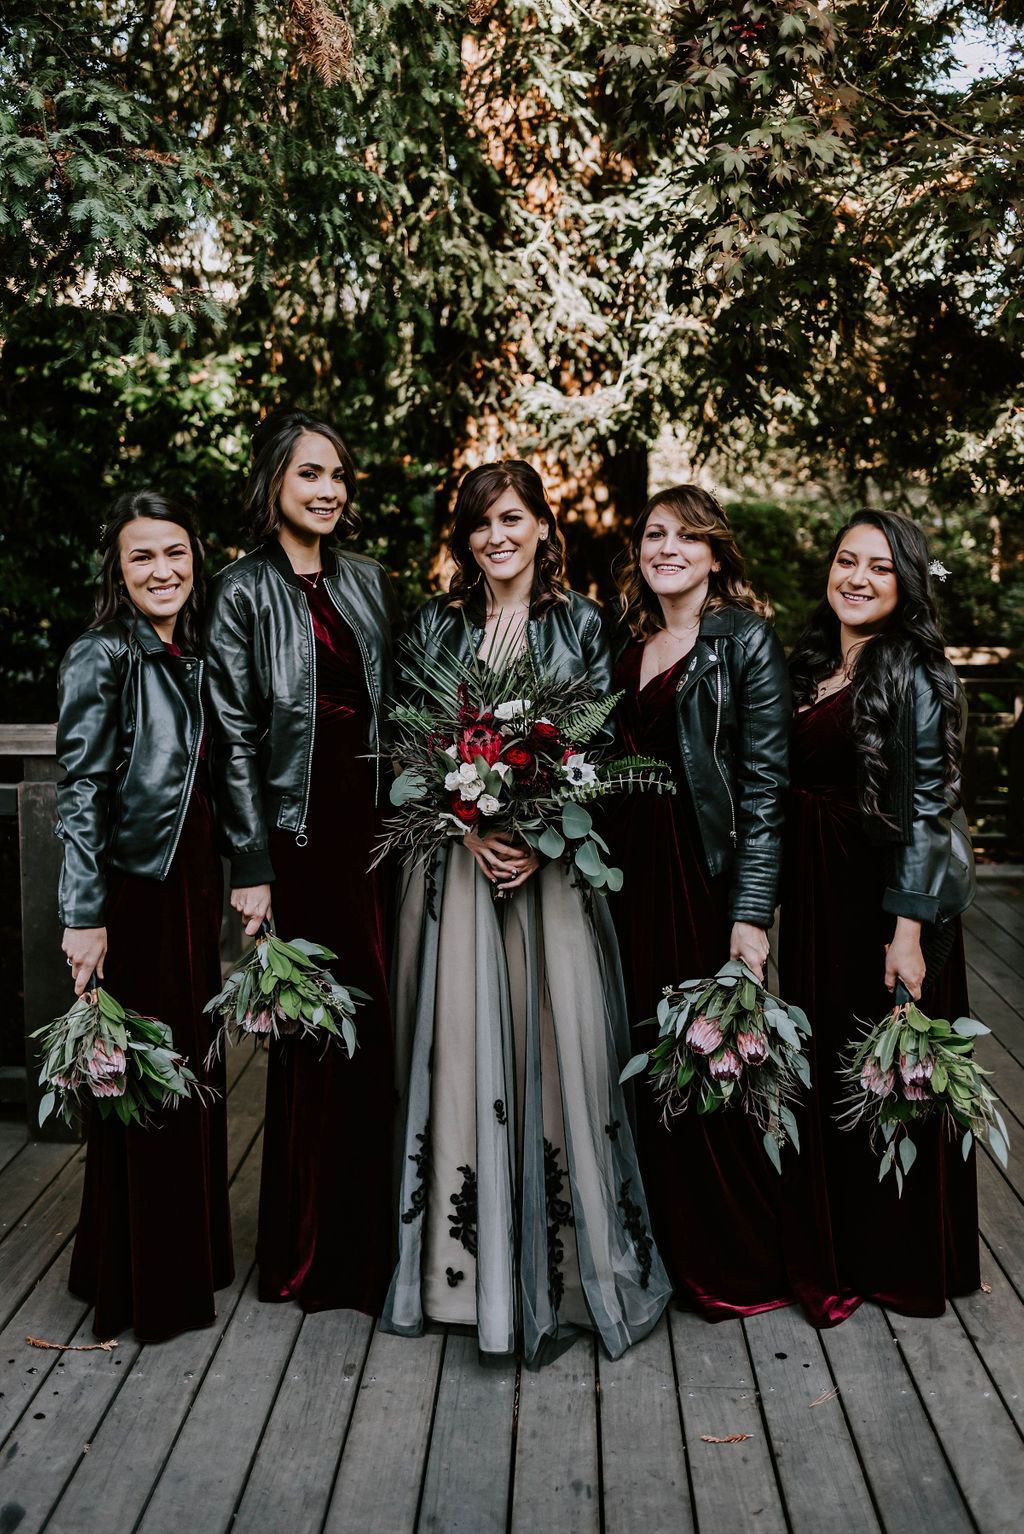 The bridesmaids were wearing mismatching burgundy velvet dresses and everyone covered up with a black leather jacket